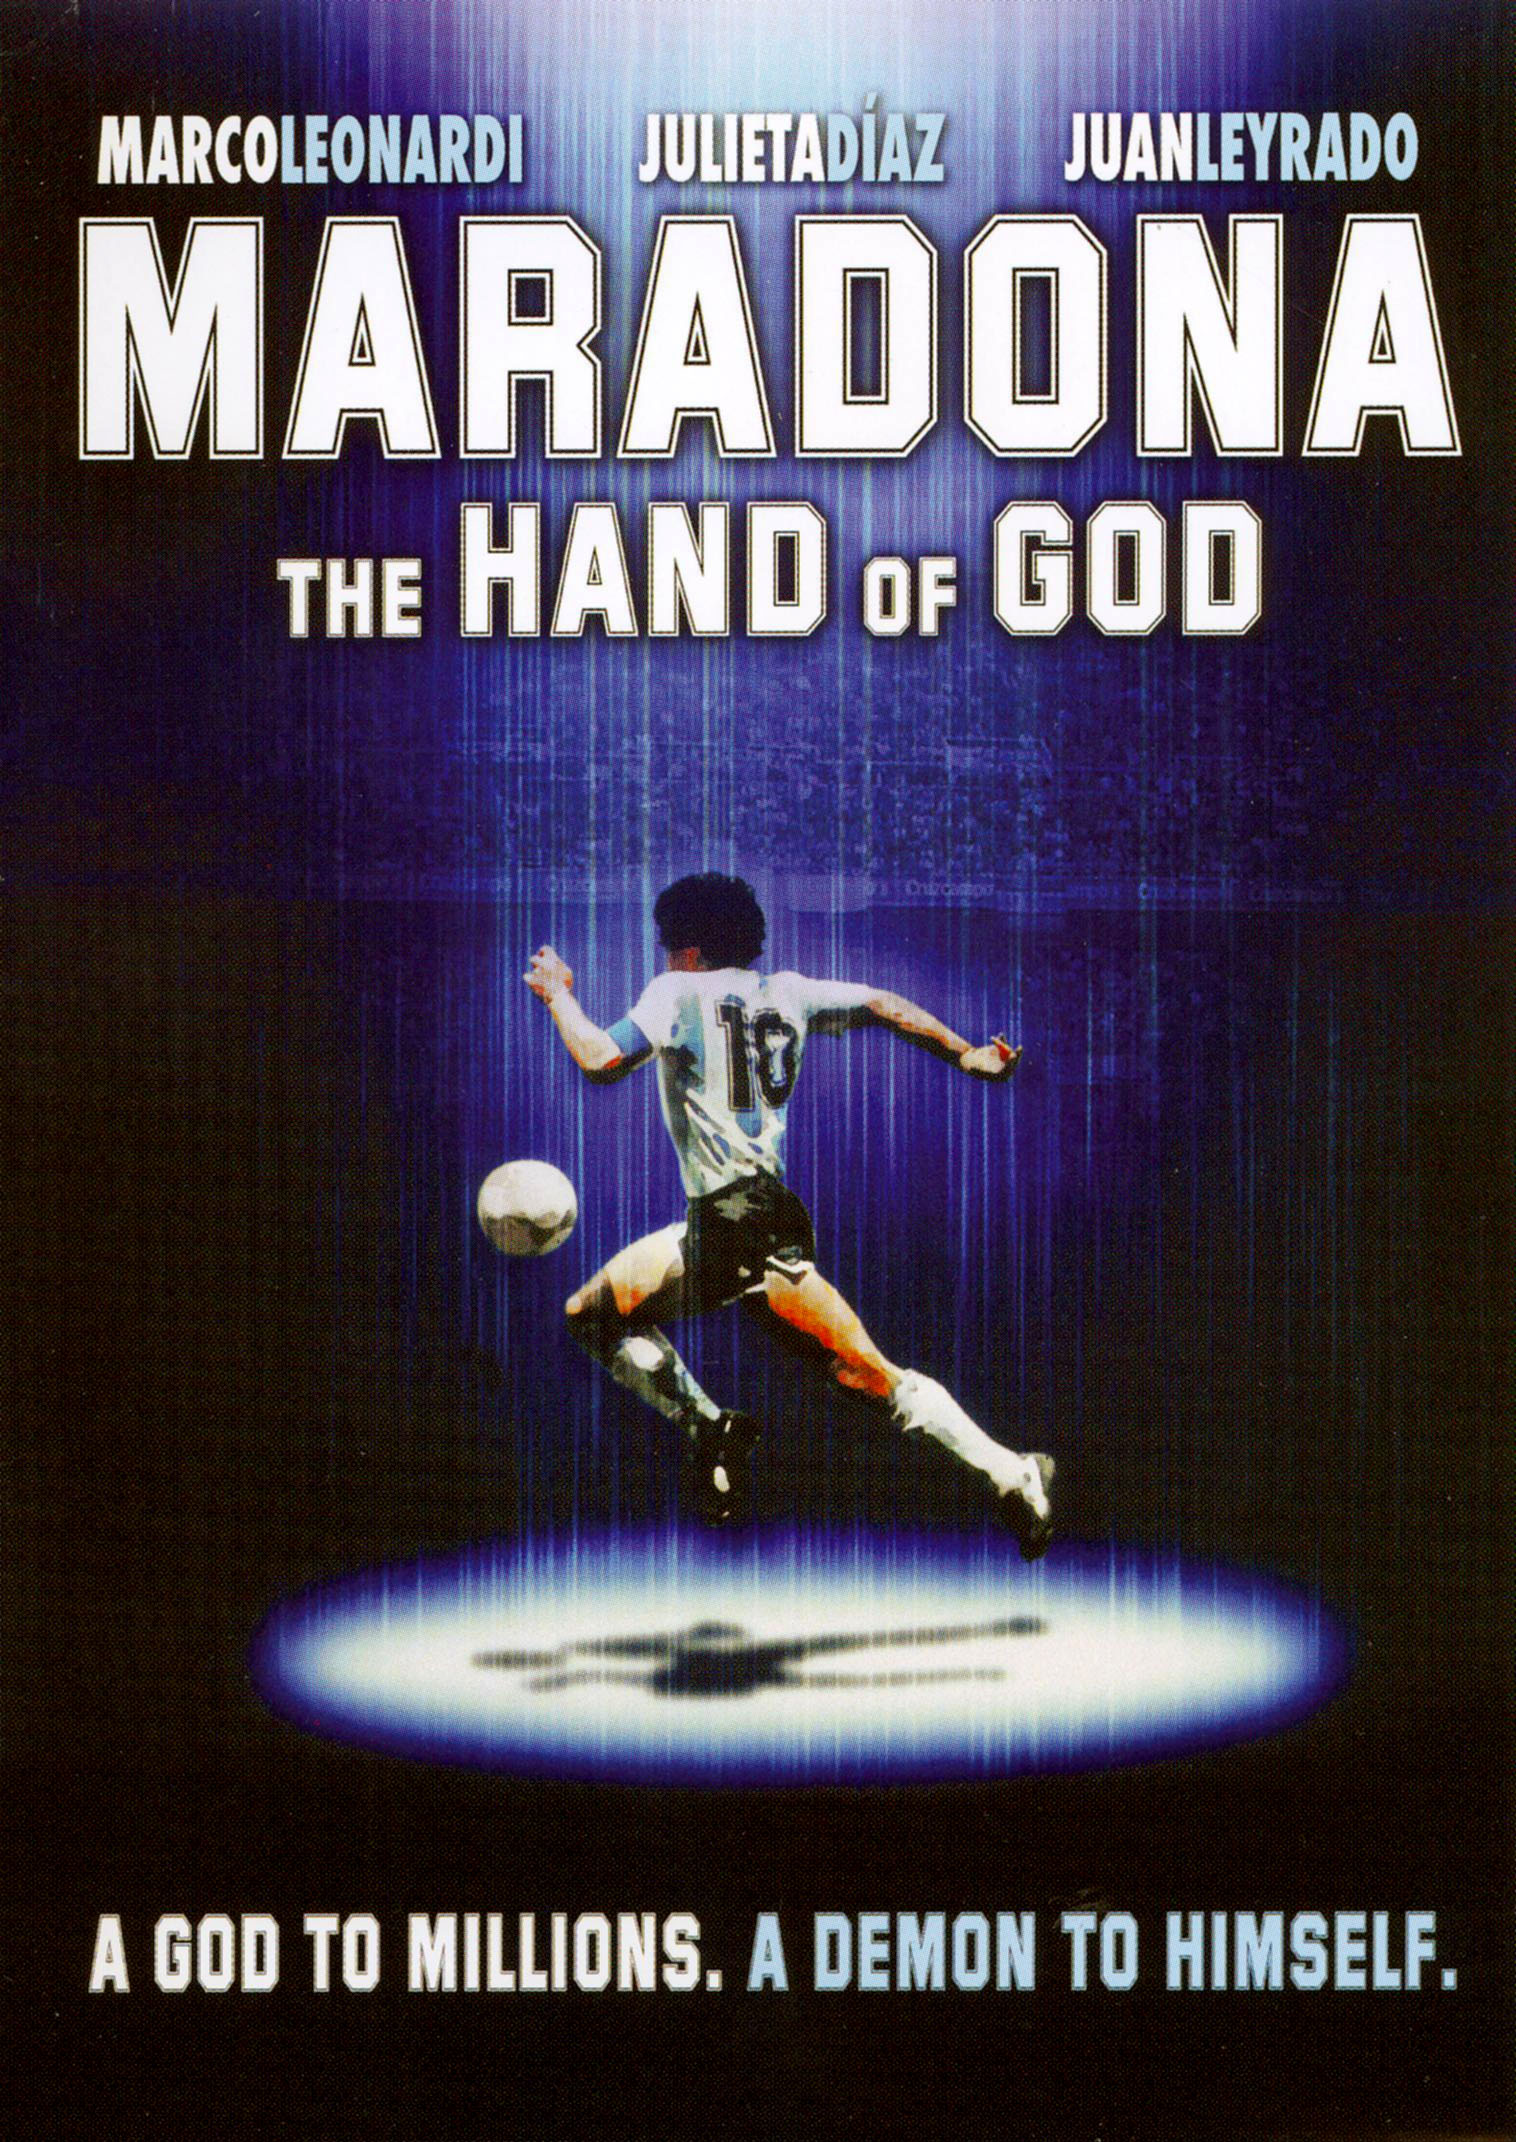 maradona the hand of god 2007 marco risi synopsis